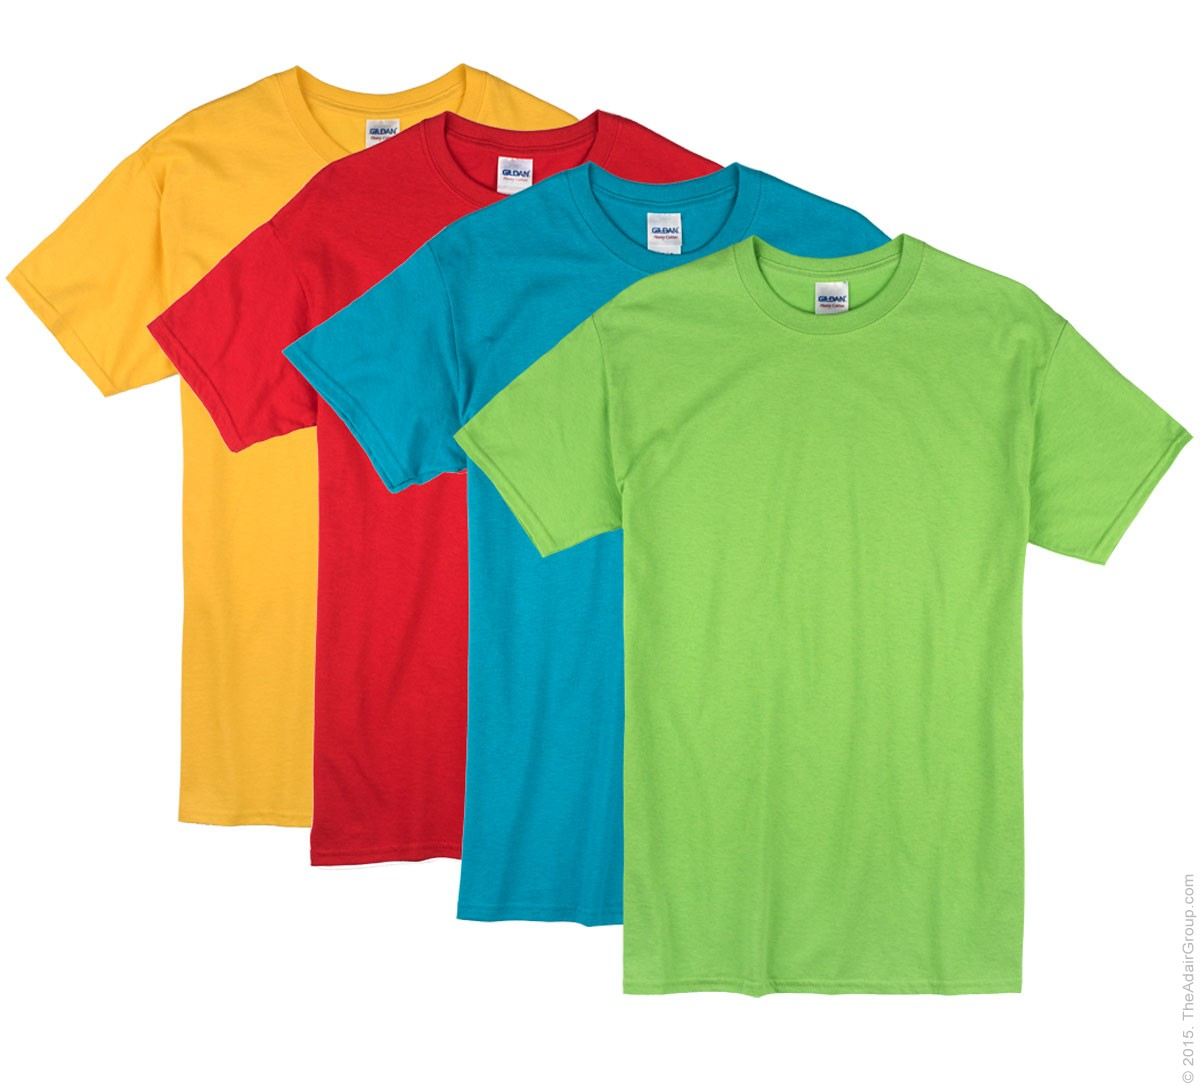 1 Wholesale T-Shirts in Bulk - Wholesale Clothing & Apparel